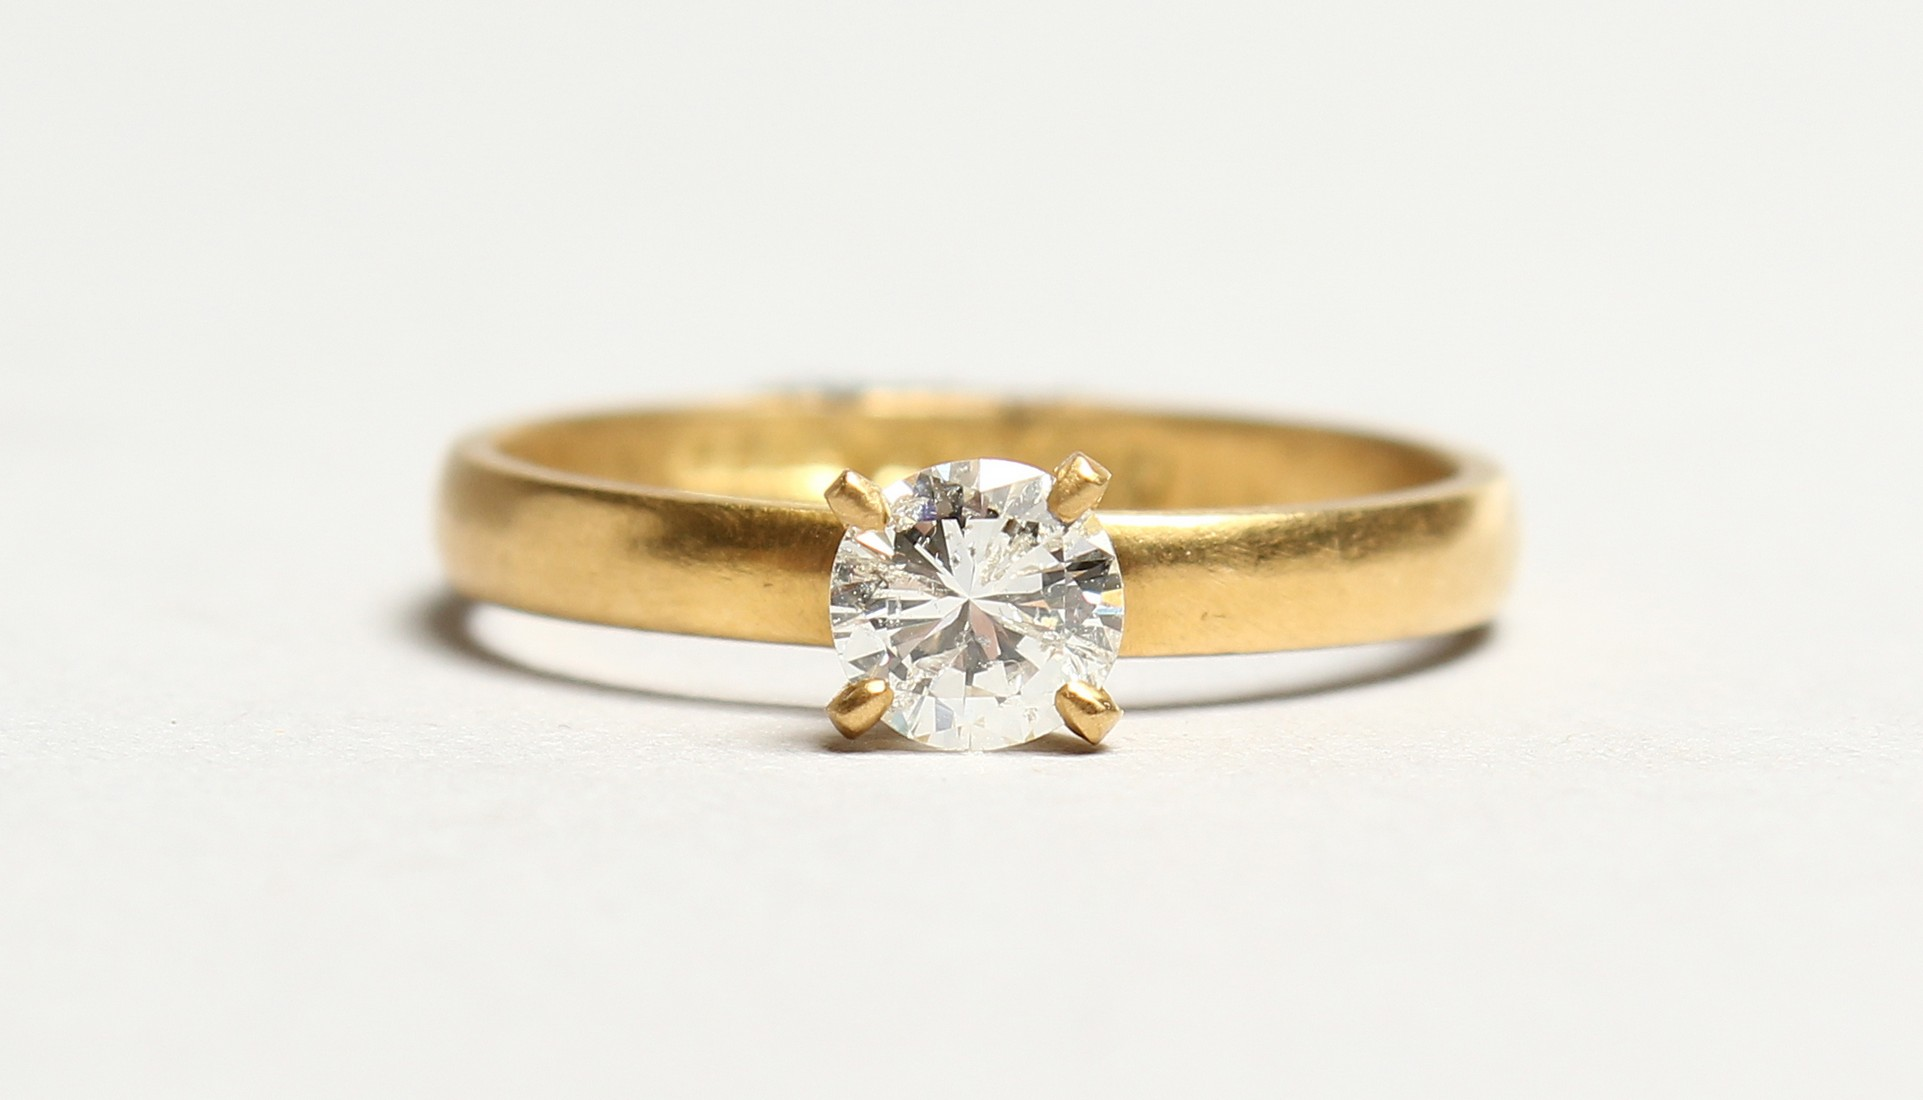 AN 18CT GOLD SOLITAIRE DIAMOND RING